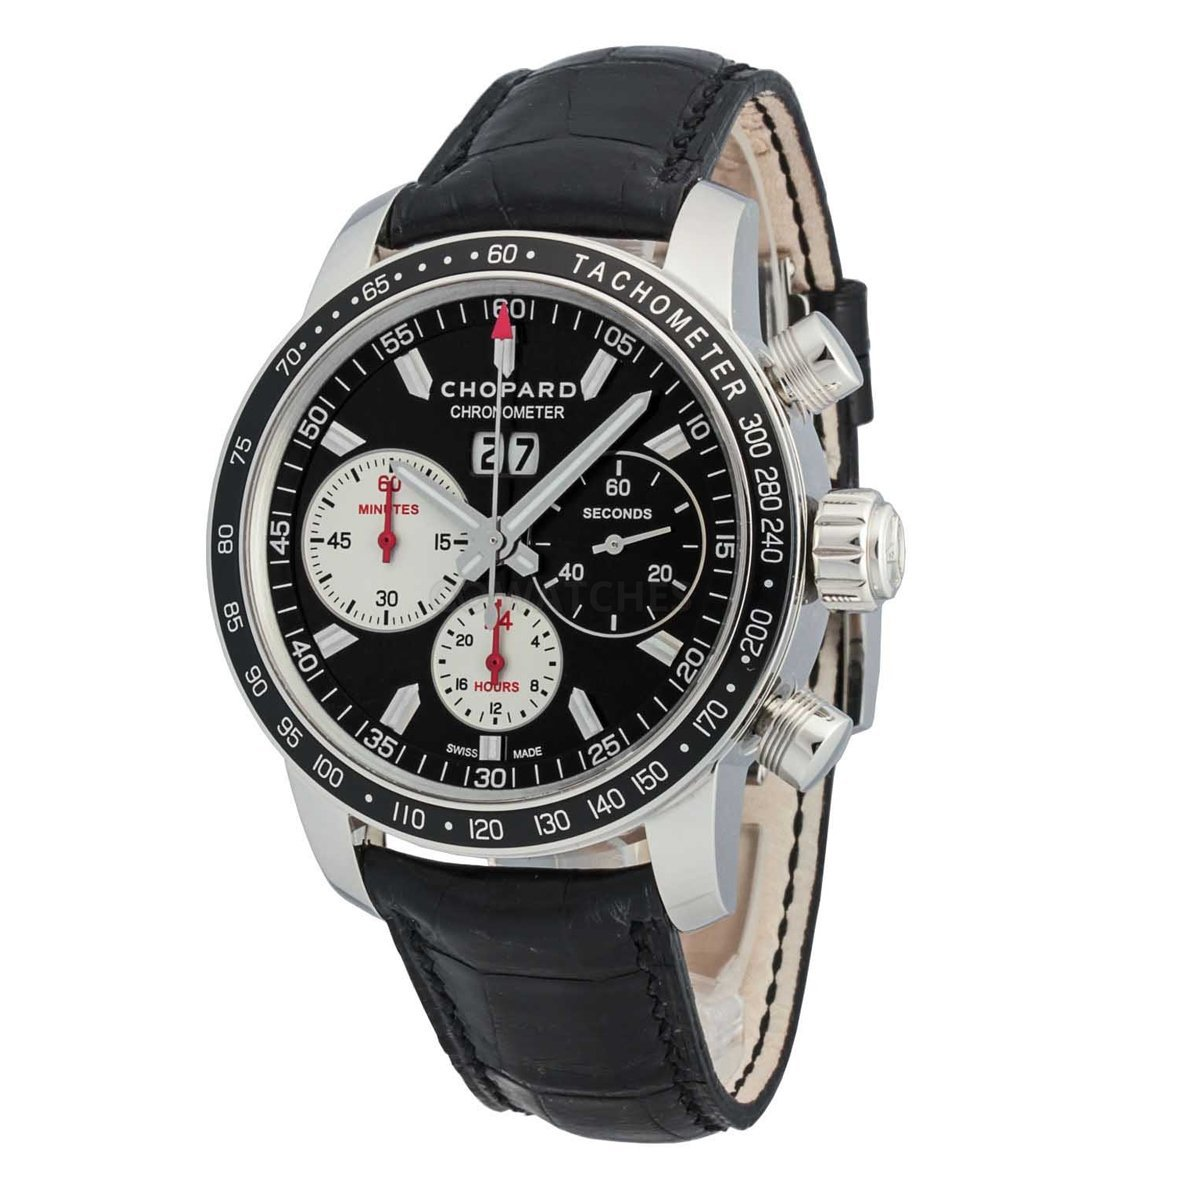 Chopard Mille Miglia Race Edition Chronograph Men's Watch Steel - Watches & Crystals